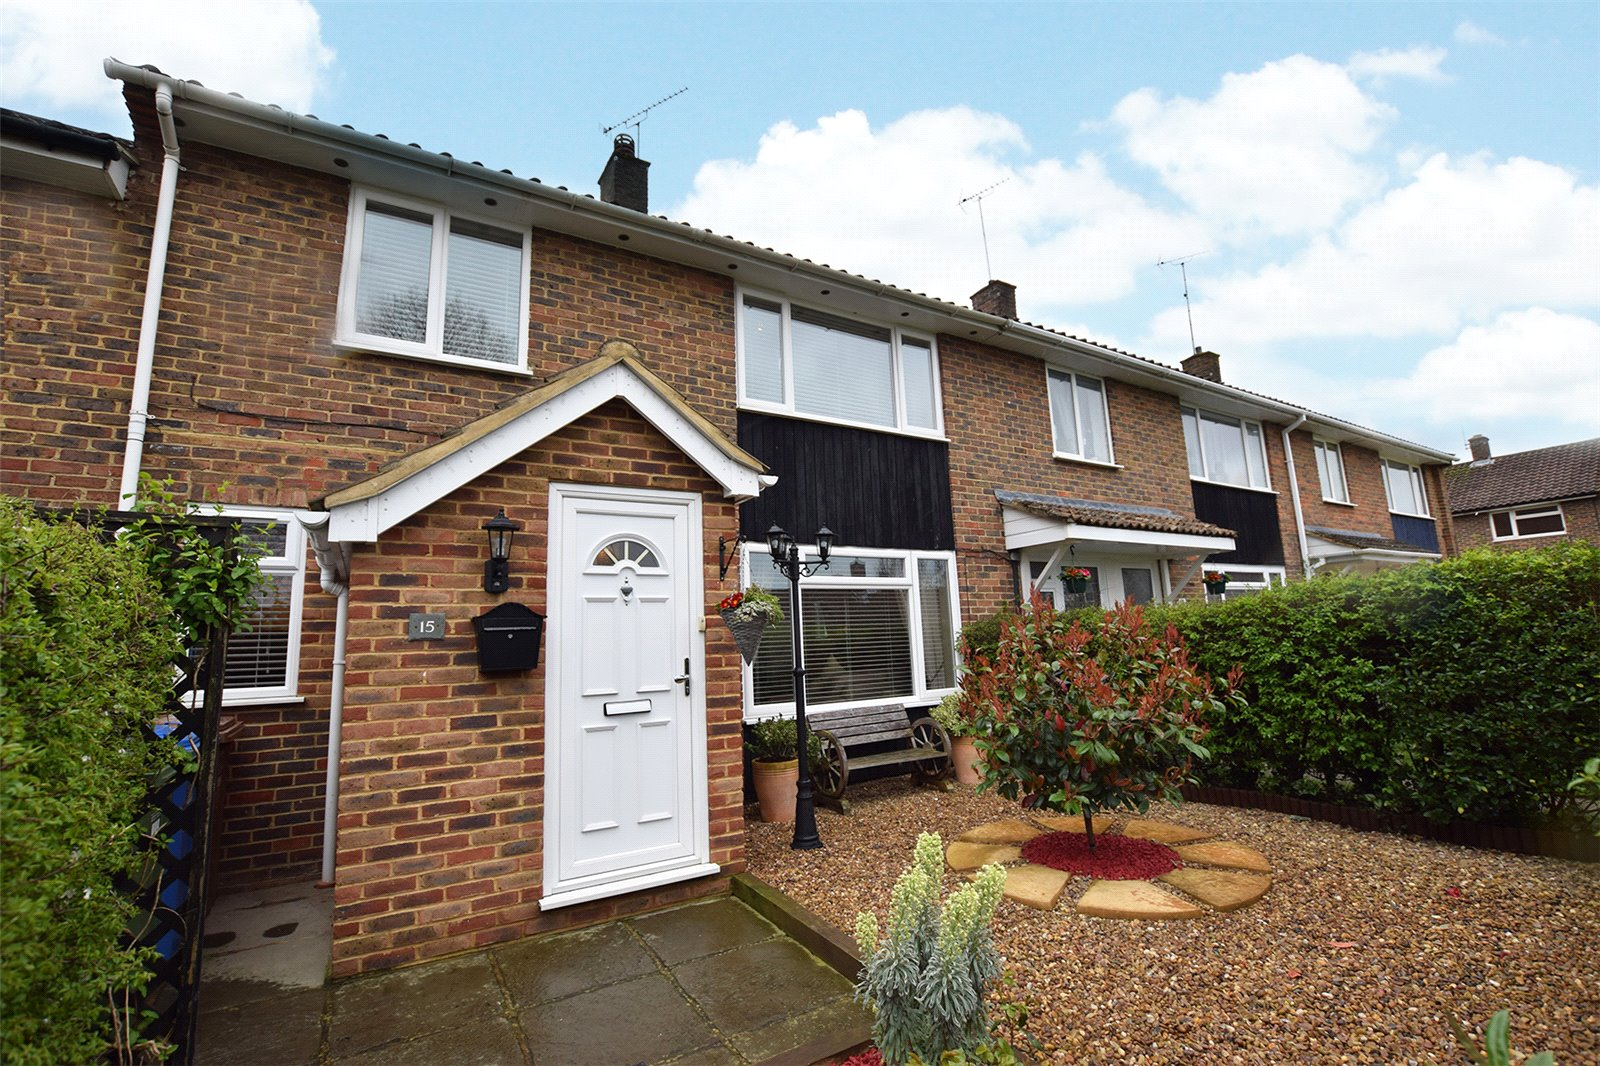 3 Bedrooms Terraced House for sale in Nelson Close, Bracknell, Berkshire, RG12